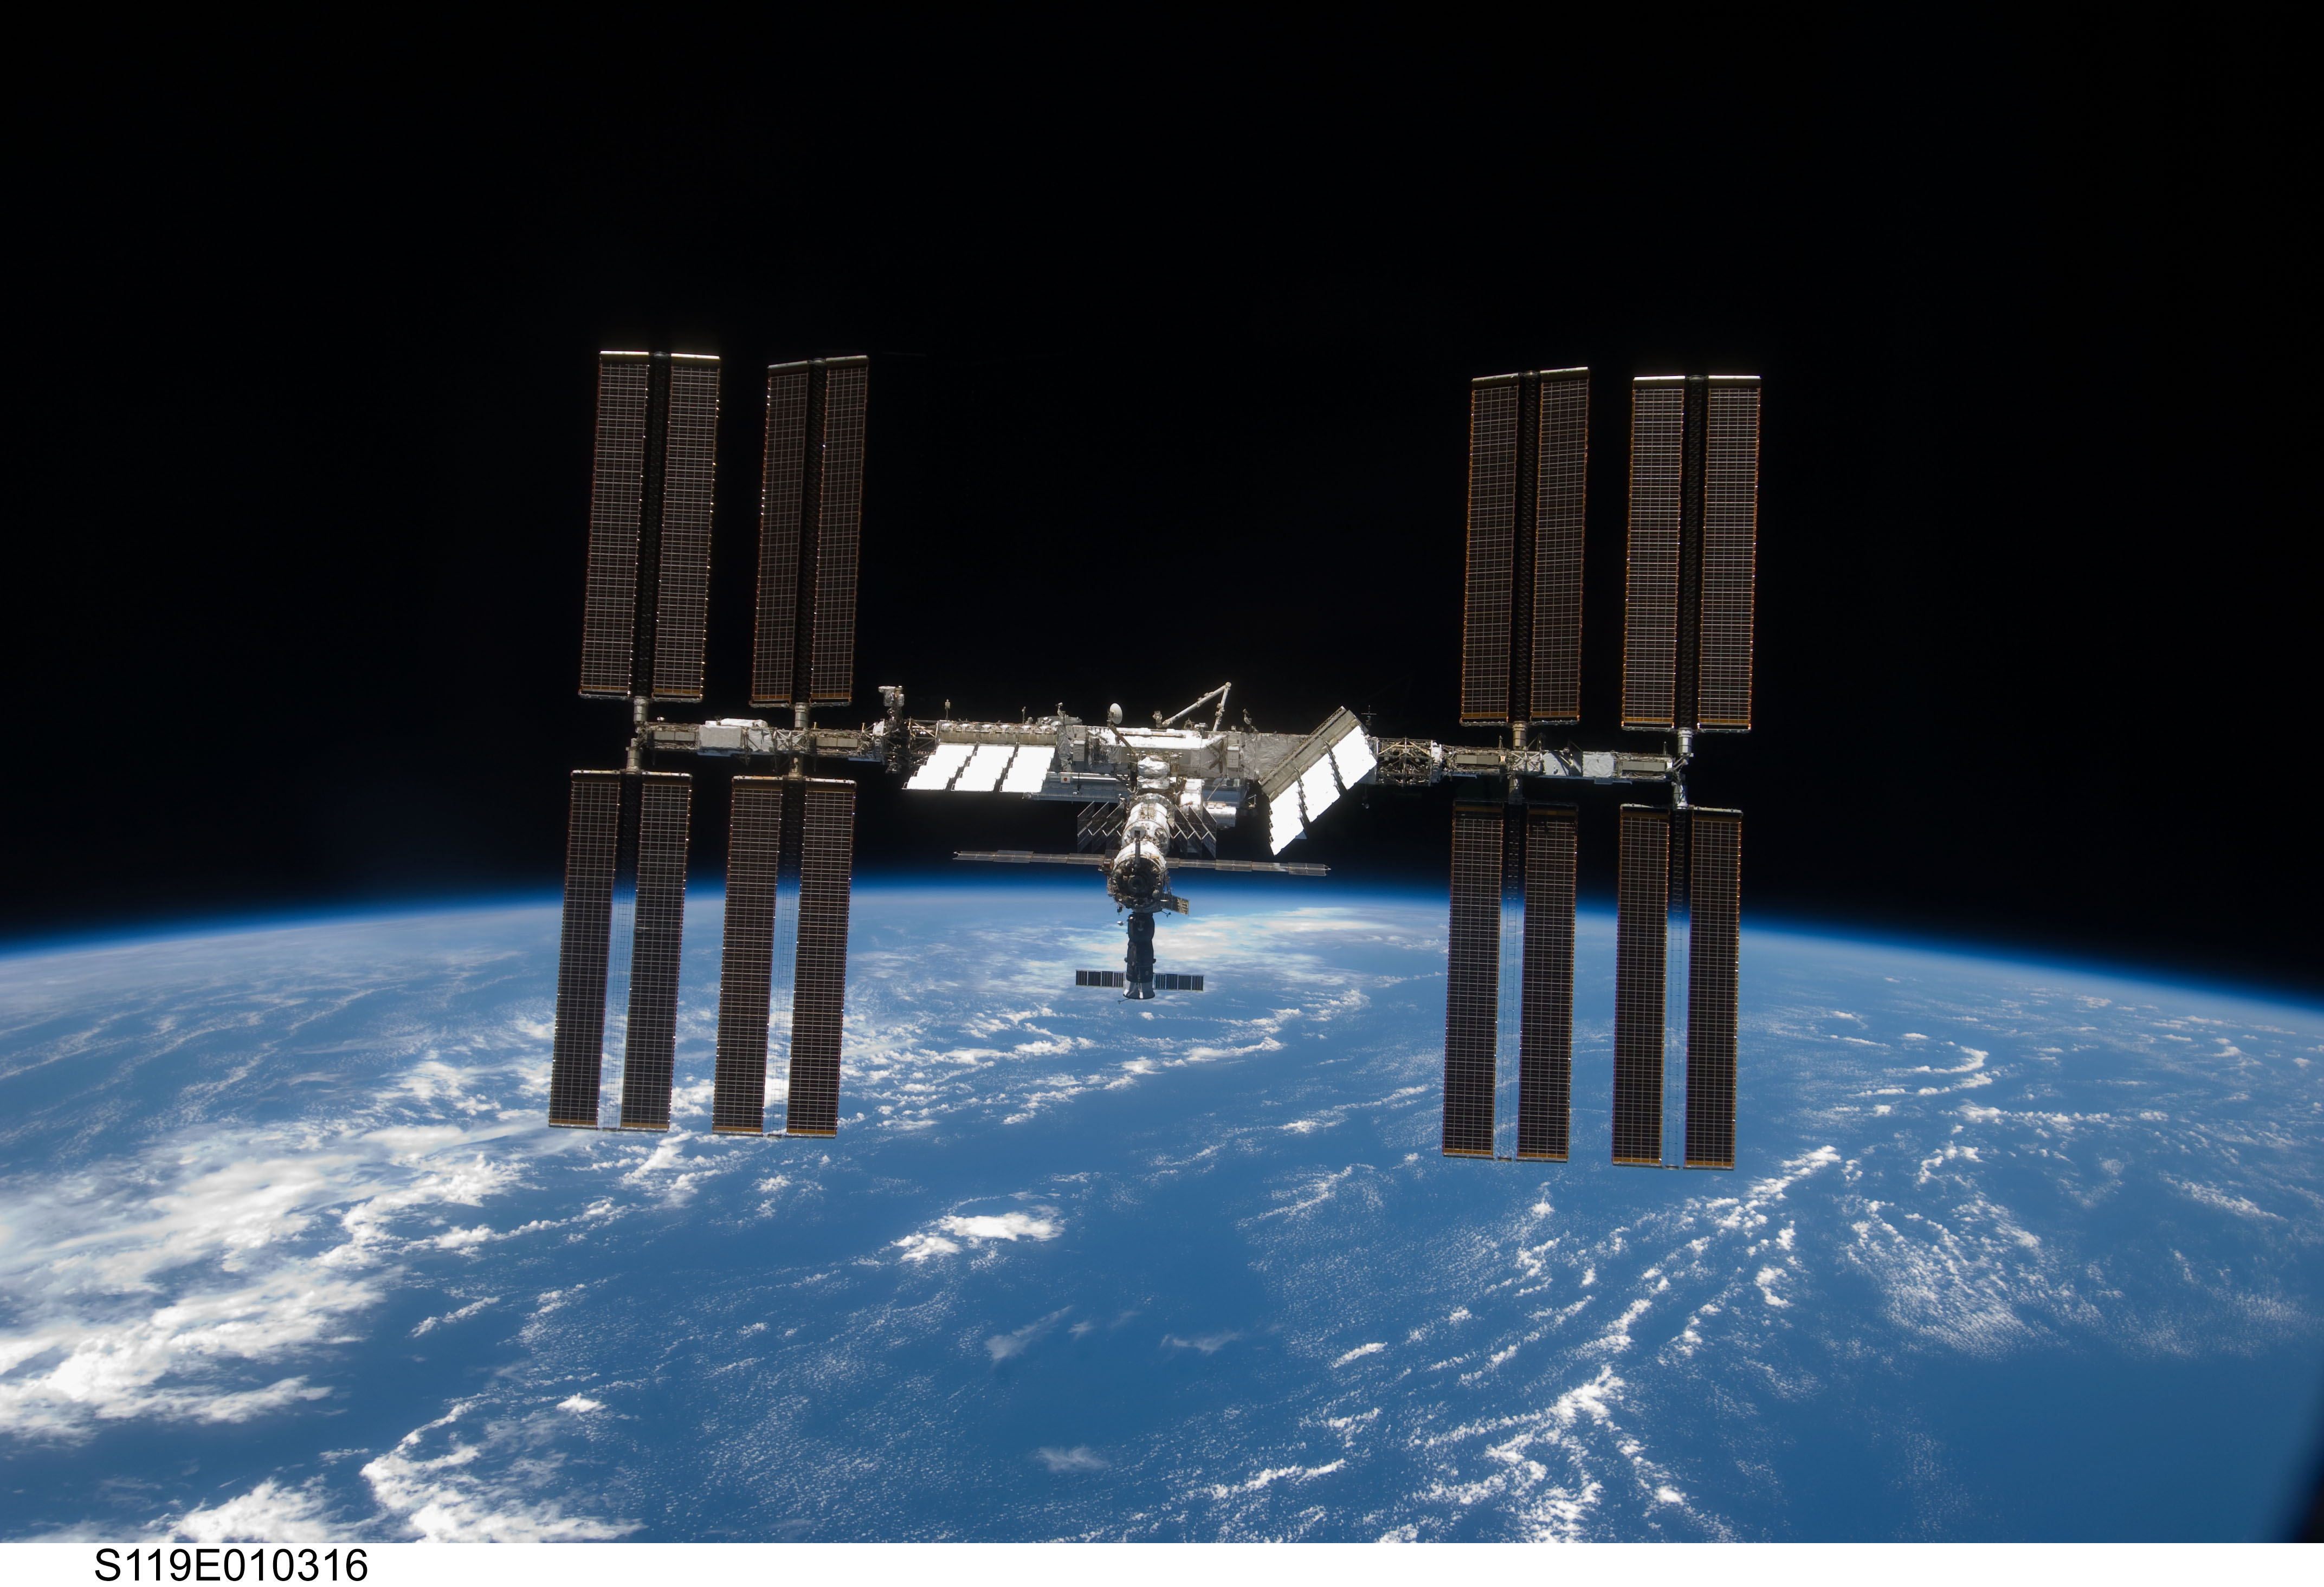 Bacteria found on International Space Station may be alien